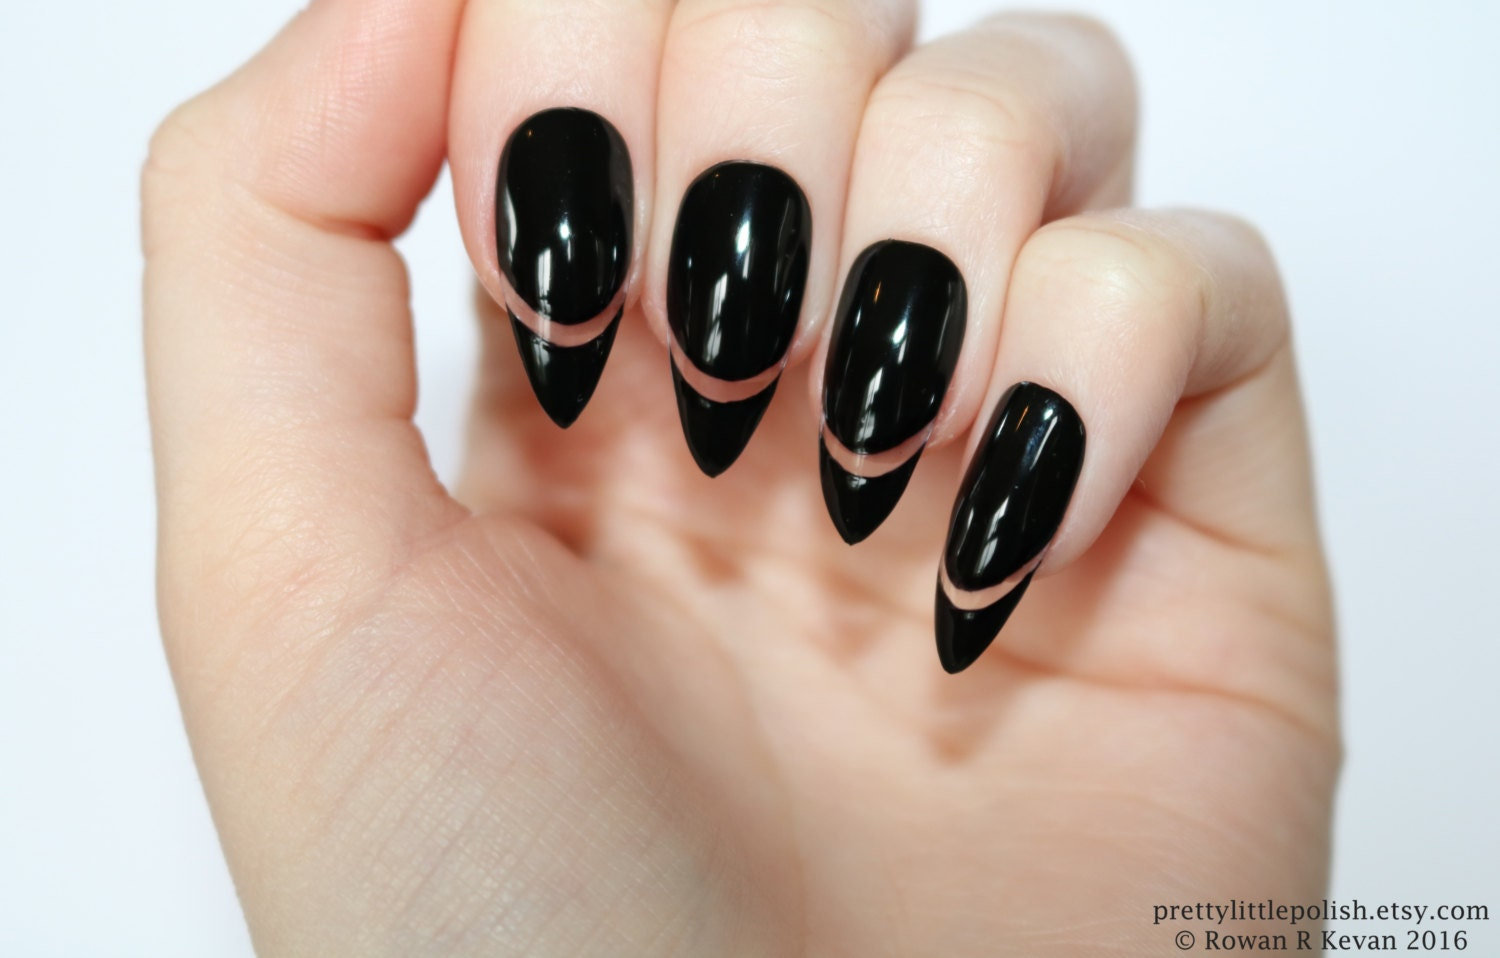 Beautiful Pointy Fake Nails Mold - Nail Art Ideas - morihati.com